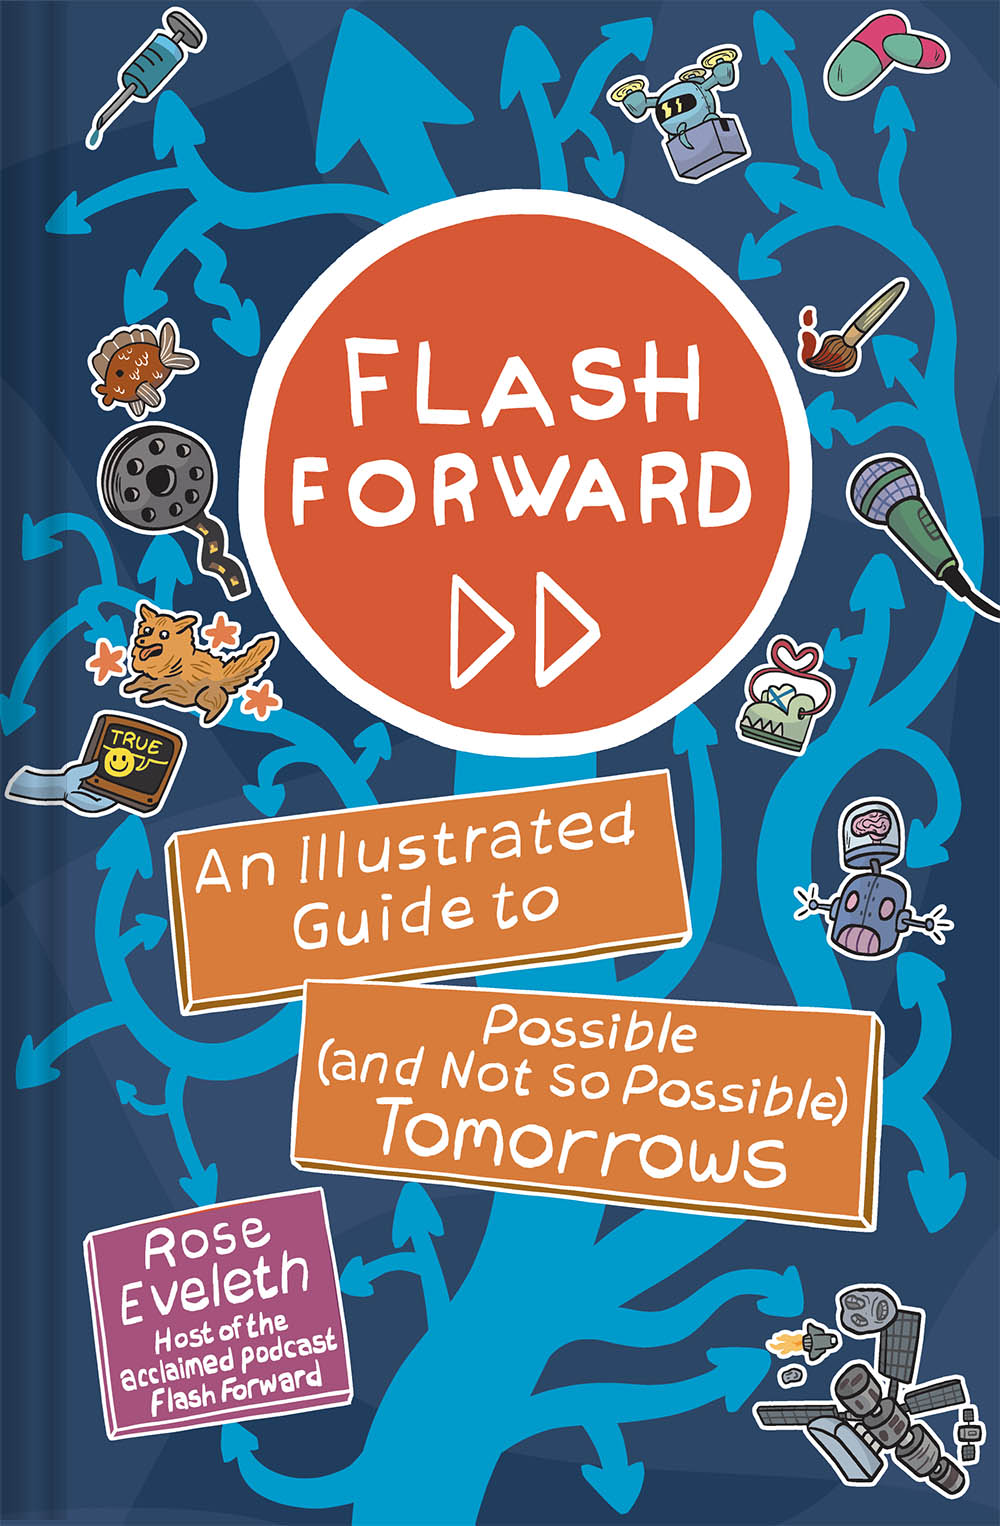 Flash Forward: An Illustrated Guide to Possible (and Not So Possible) Tomorrows